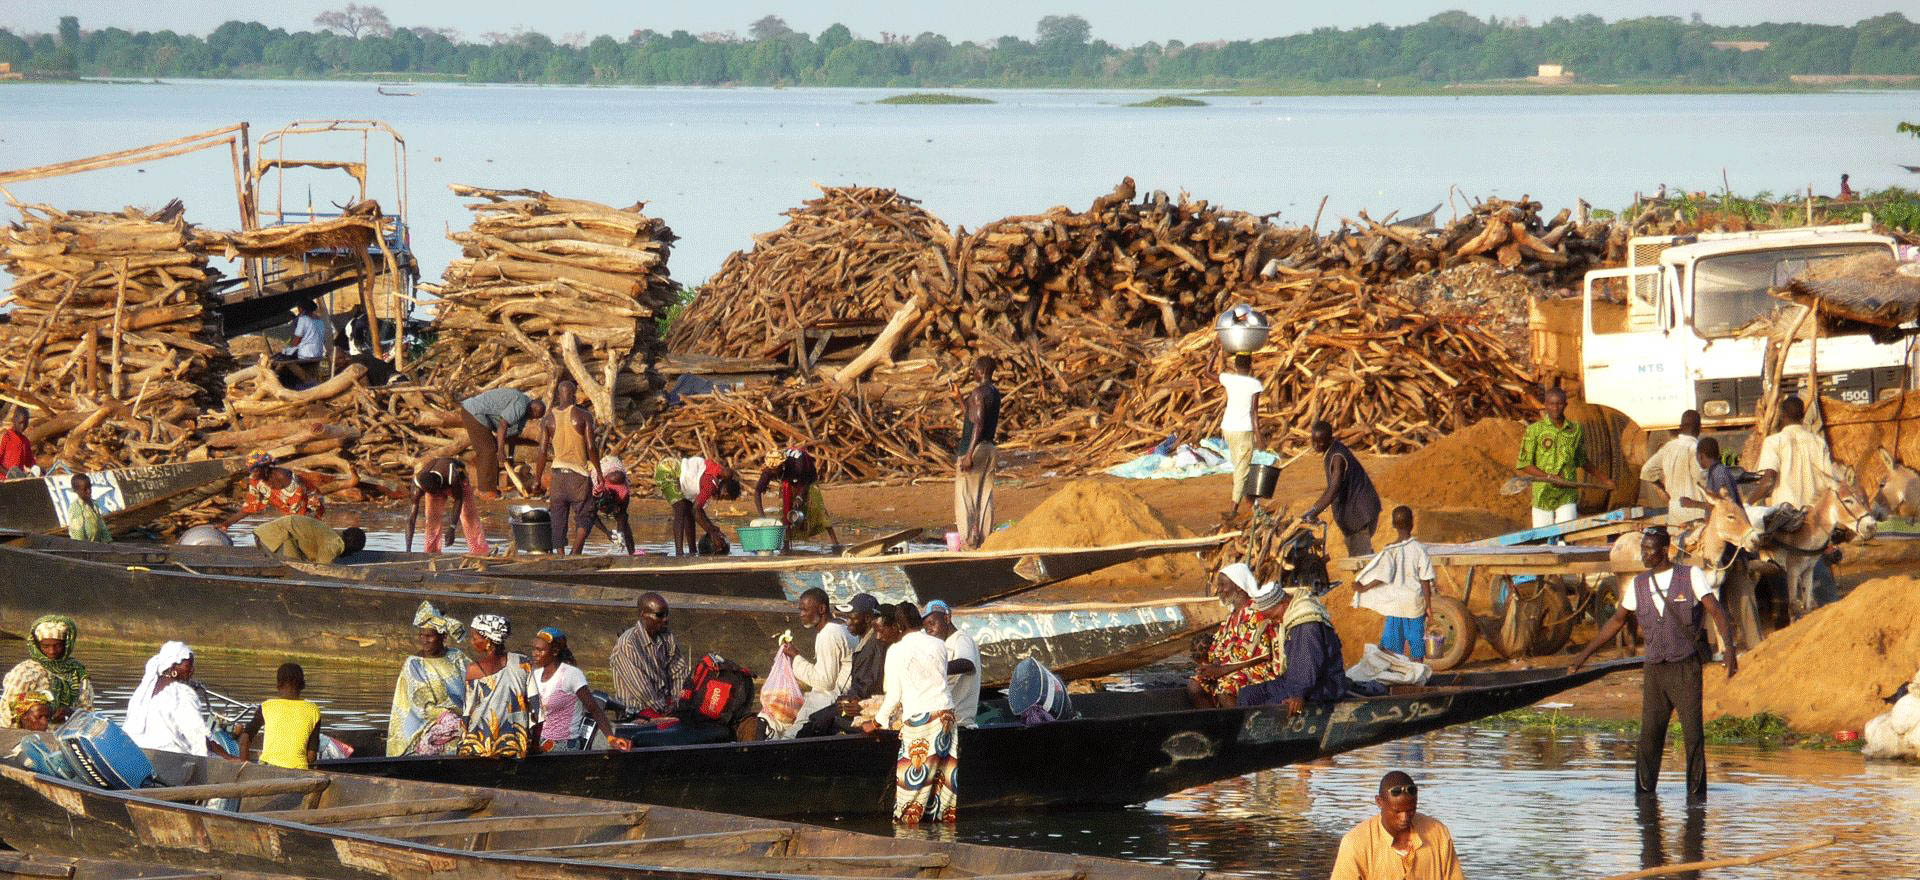 Traders on the River Niger - Mali Holidays and Tours